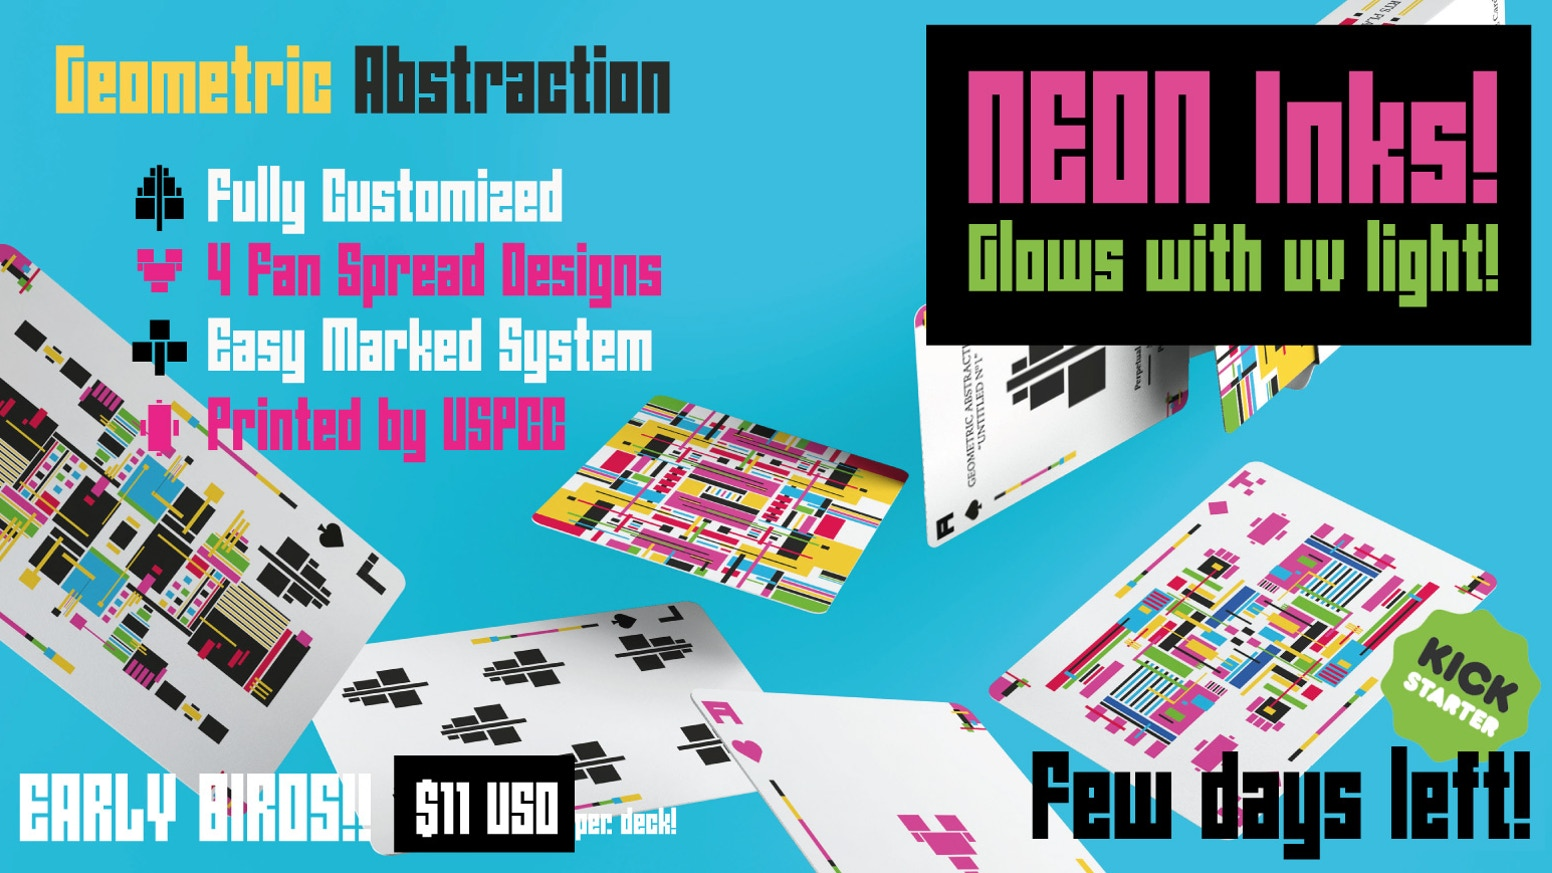 Geometric Abstraction Playing Cards Marked System Relaunch